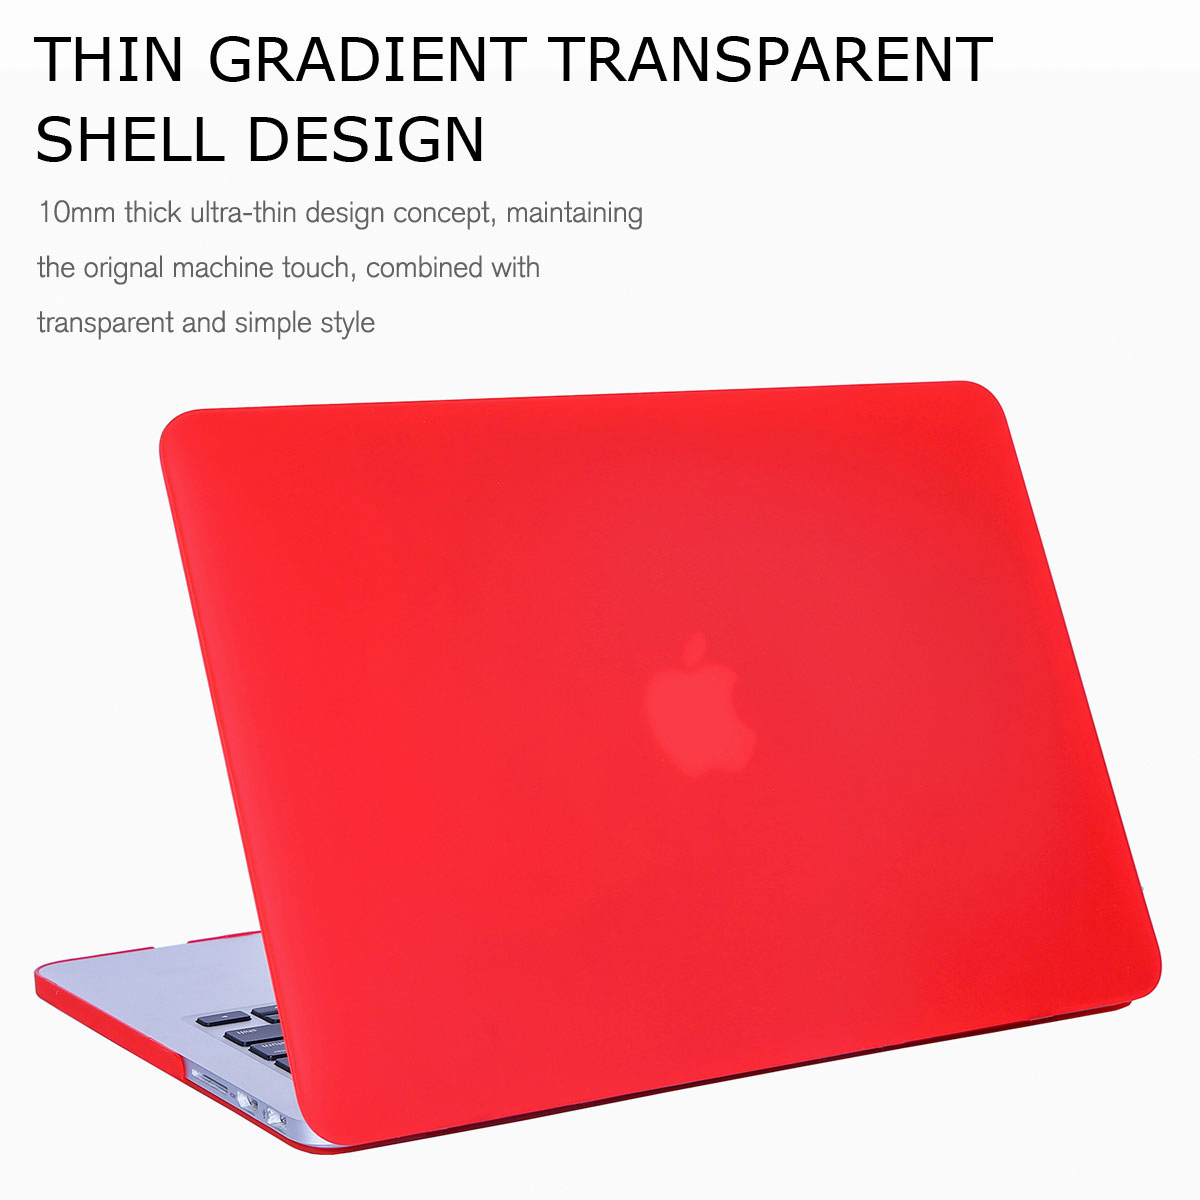 Matte-Rubberized-Hard-Case-Cover-Shell-For-Macbook-Pro-Retina-12-039-039-13-039-039-15-Inch thumbnail 33